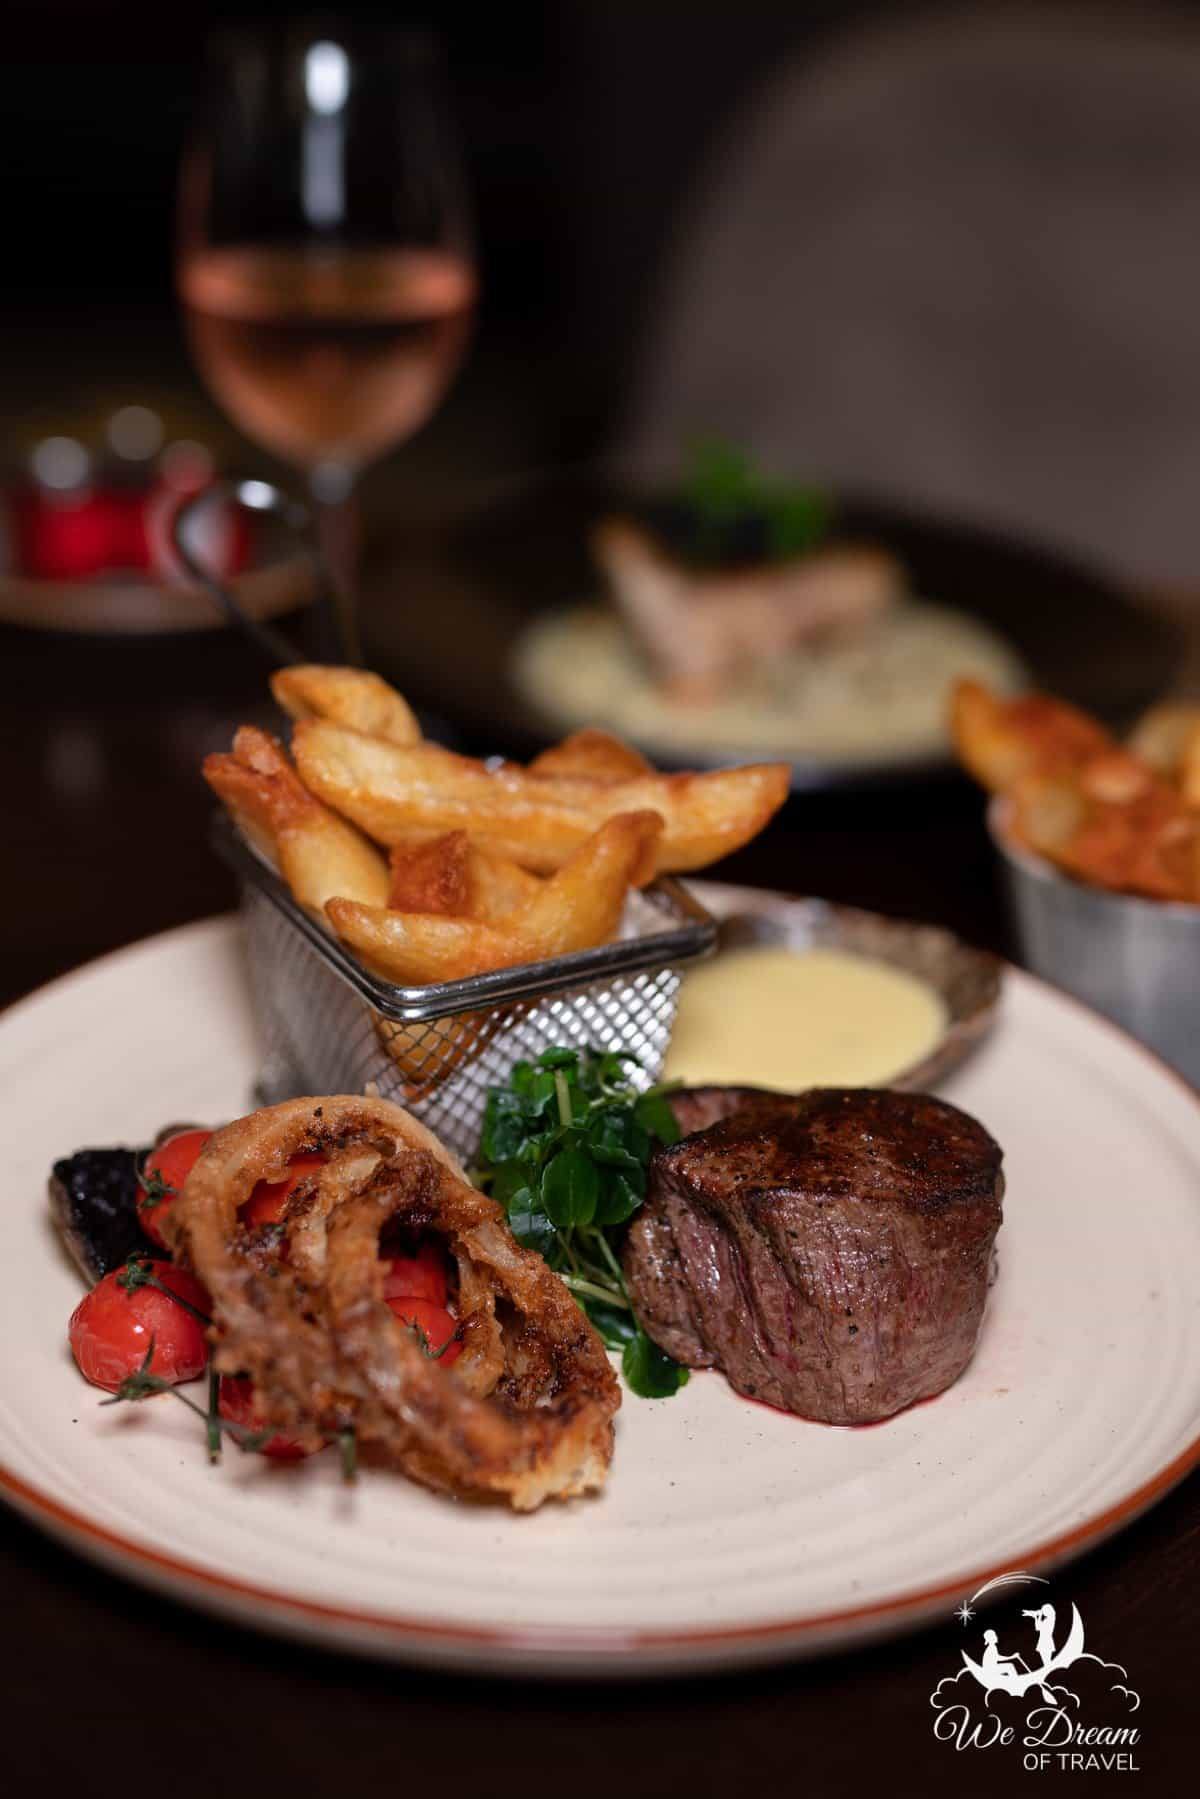 Steak and chips at The Rise York